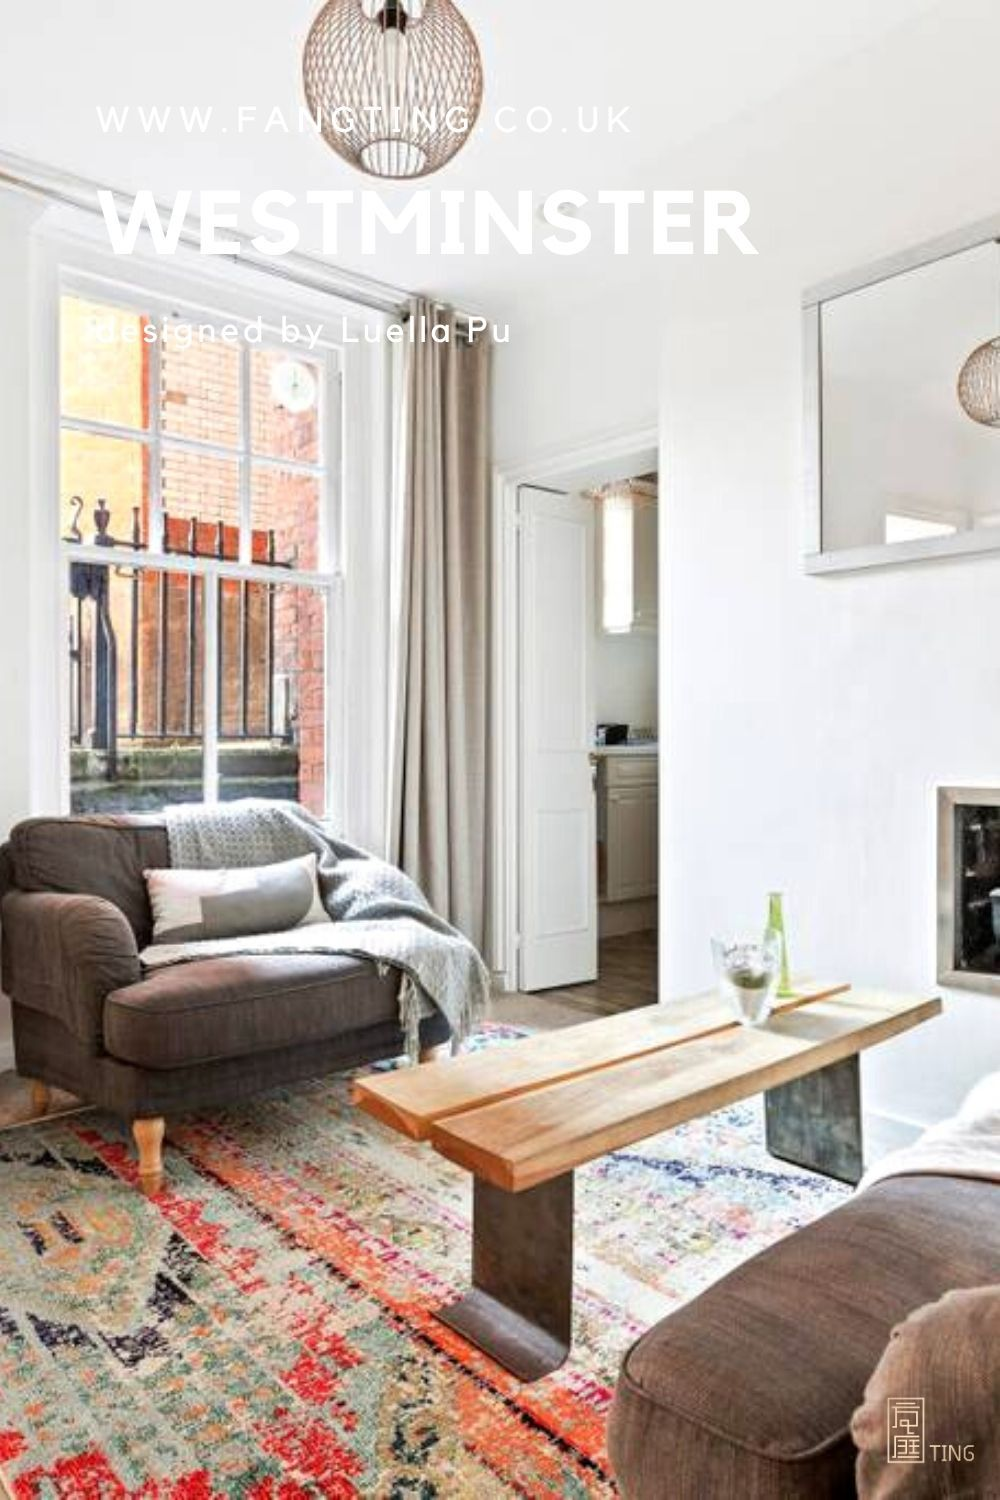 #modernhome #interior123 #interiordesire #interiordetails #pinterestinspired Serviced Accommodation is a competitive sector within the property industry and differentiation is vital to success.  It looks easy to do, but to get it right takes time, passion, co-ordination and an eye for detail.